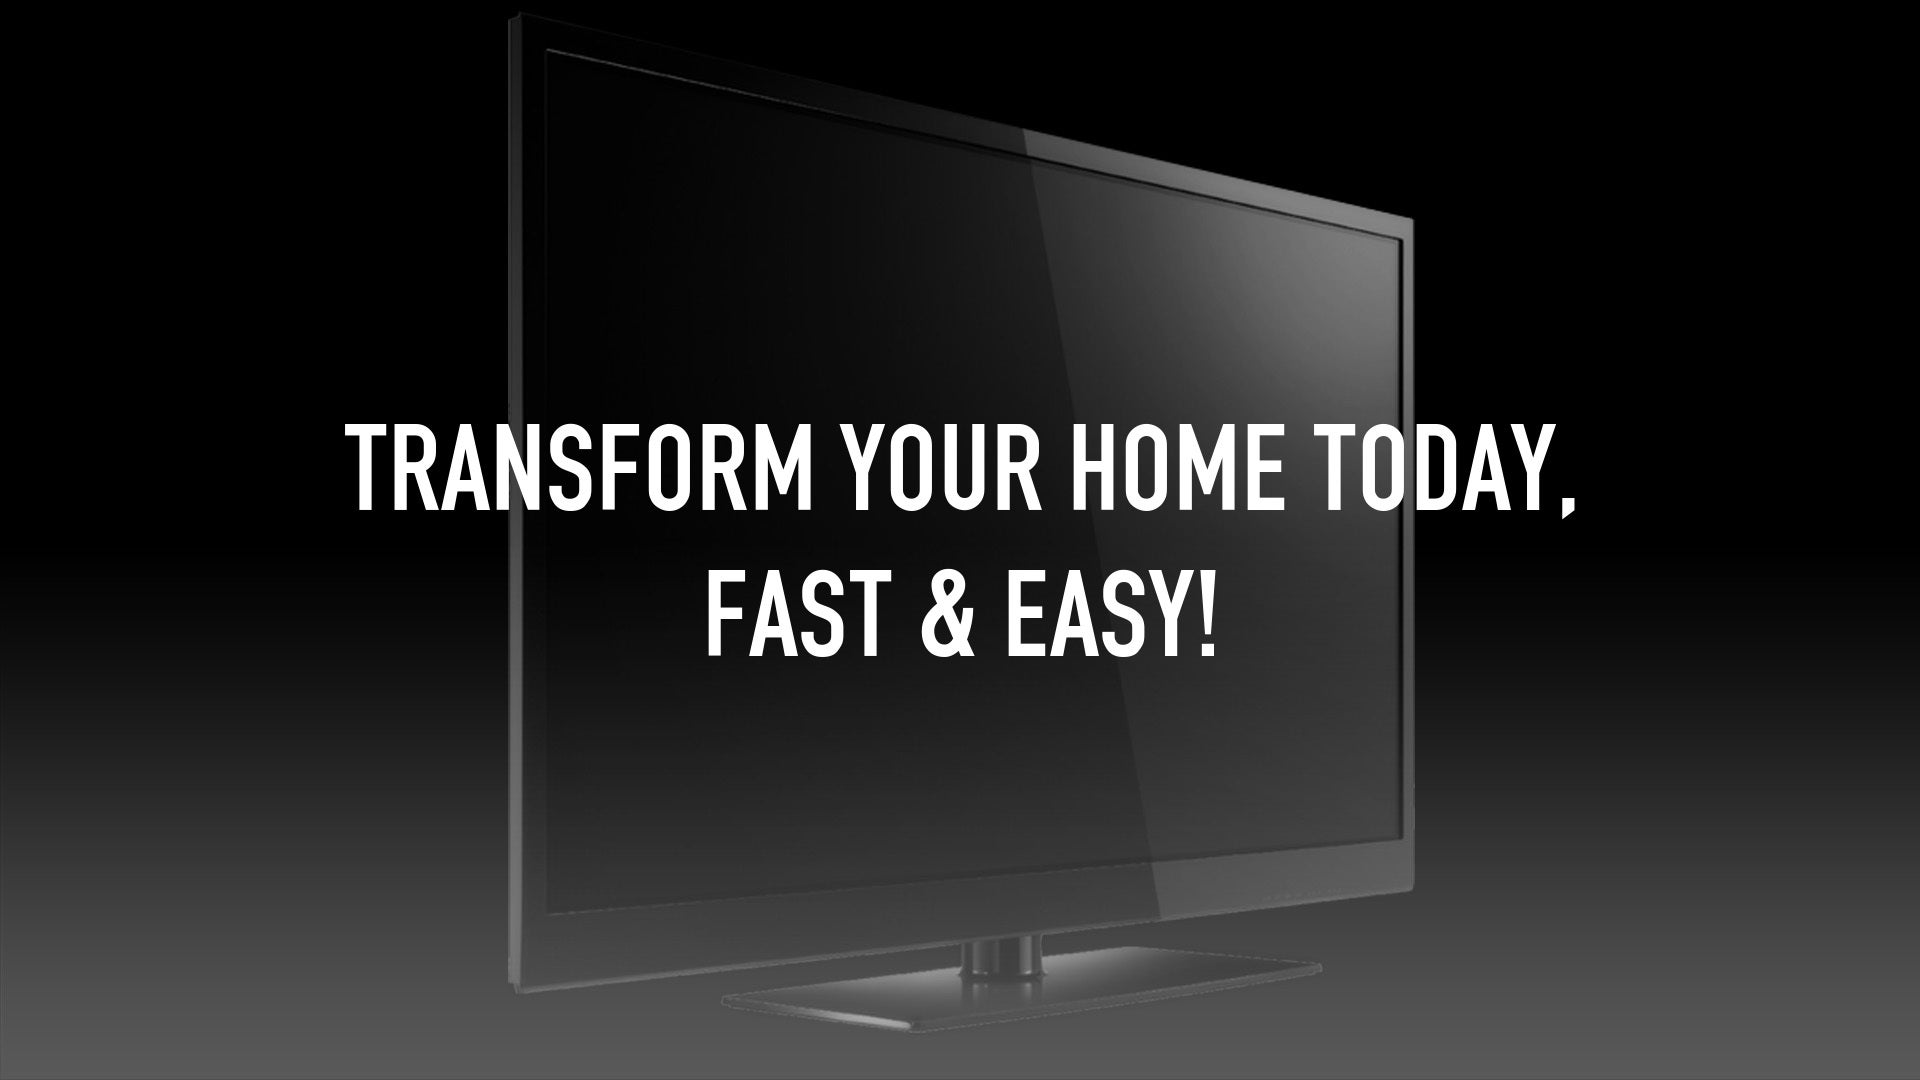 Transform your home today, fast & easy!